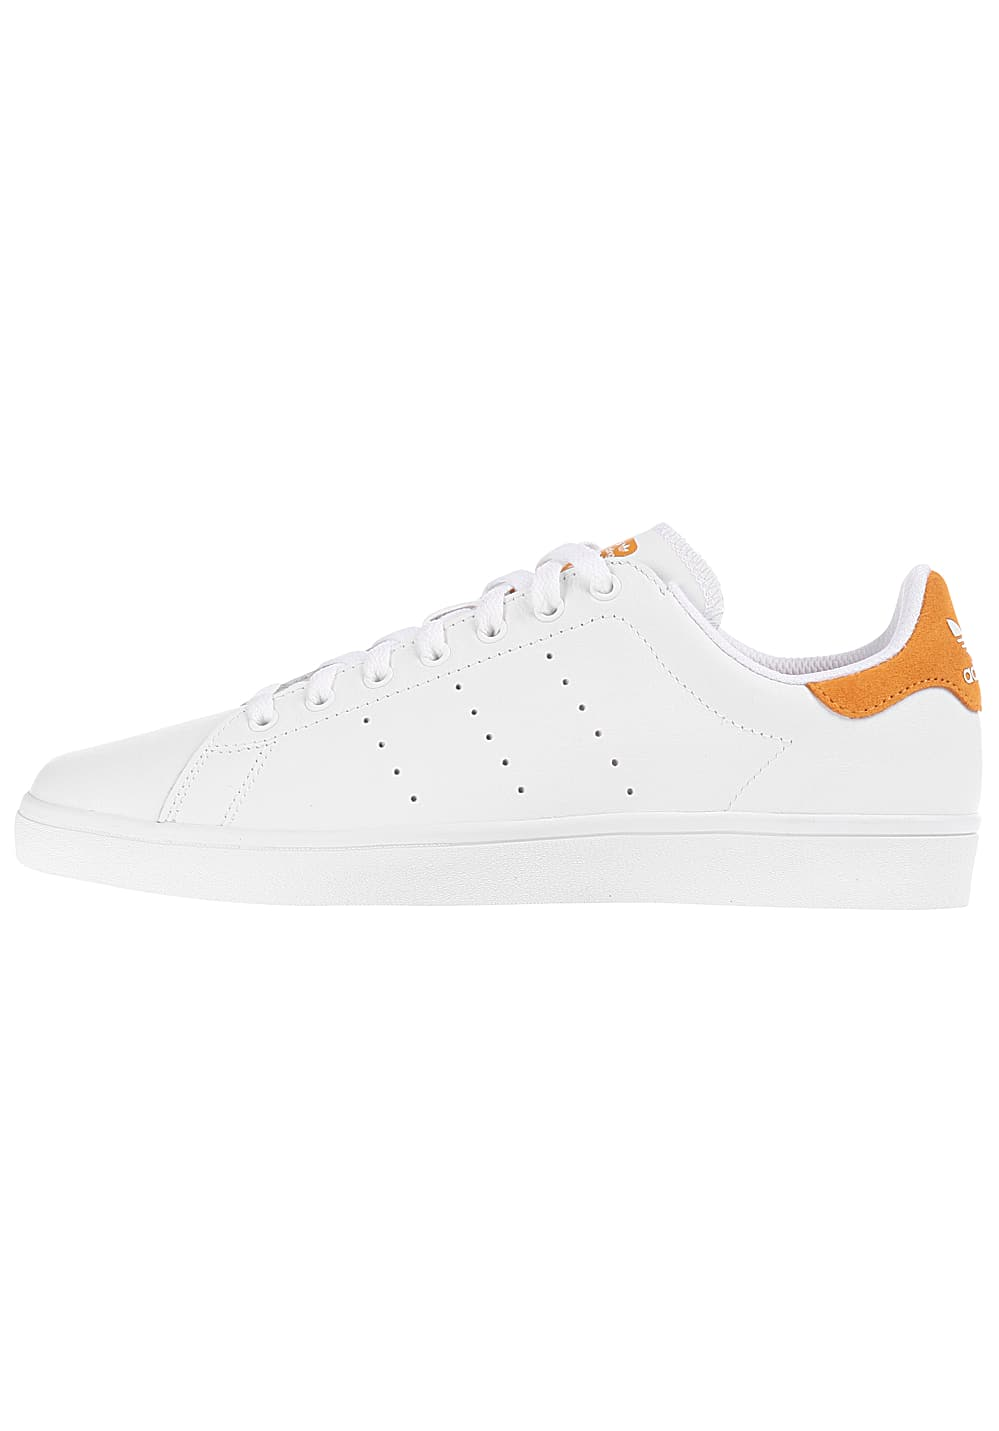 website for discount meet san francisco Adidas Skateboarding Stan Smith Vulc - Sneakers for Men - White